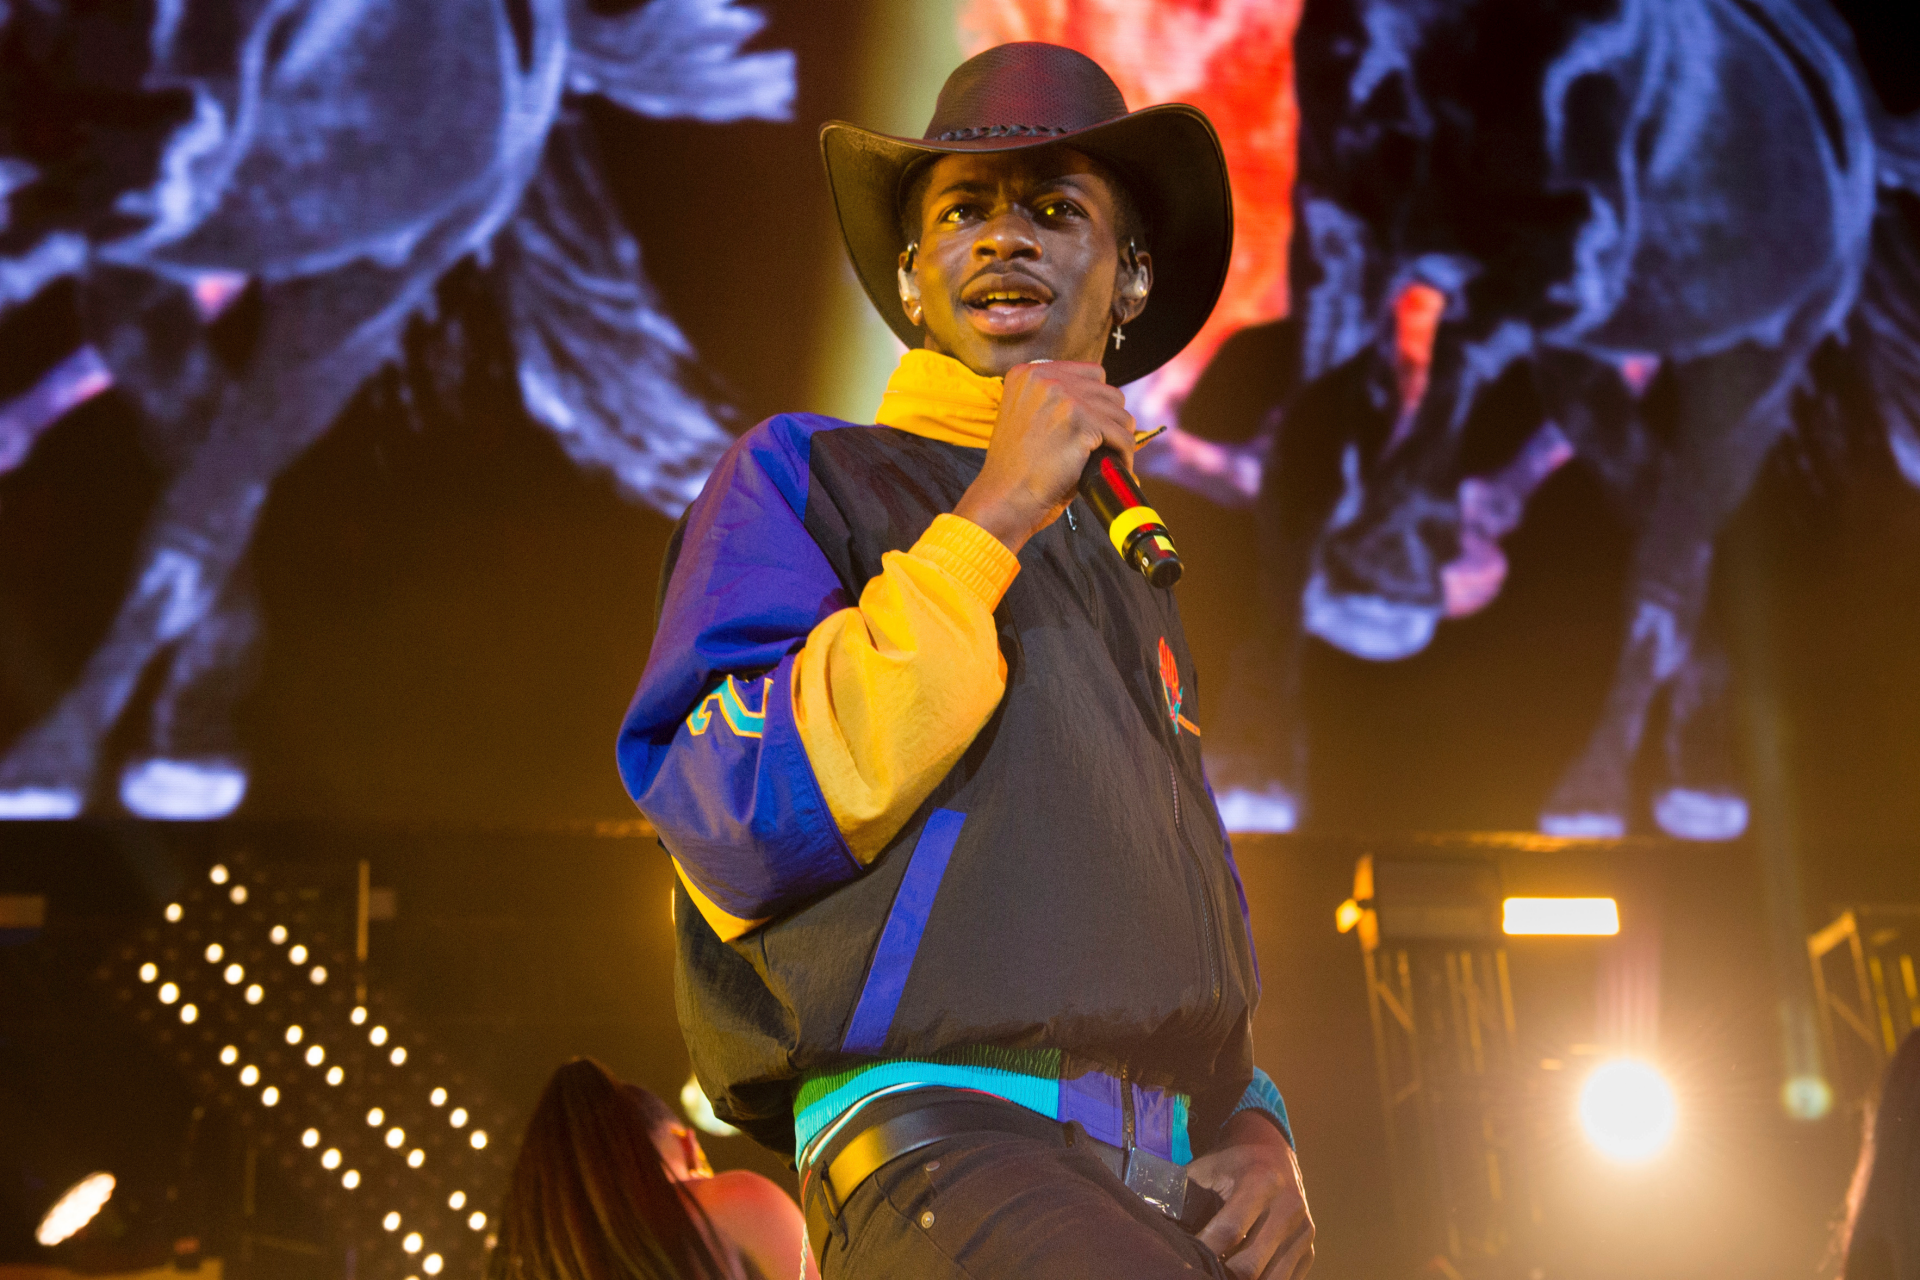 Westlake Legal Group be0d4758-ContentBroker_contentid-3c178bddbcc34bd78bce765046066d55 Lil Nas X hit 'Old Town Road' makes Billboard charts history fox-news/entertainment/music fox-news/entertainment/genres/hip-hop-rap fox-news/entertainment fnc/entertainment fnc Associated Press article 777a7009-3a8d-568c-9298-1ddbcff0b799